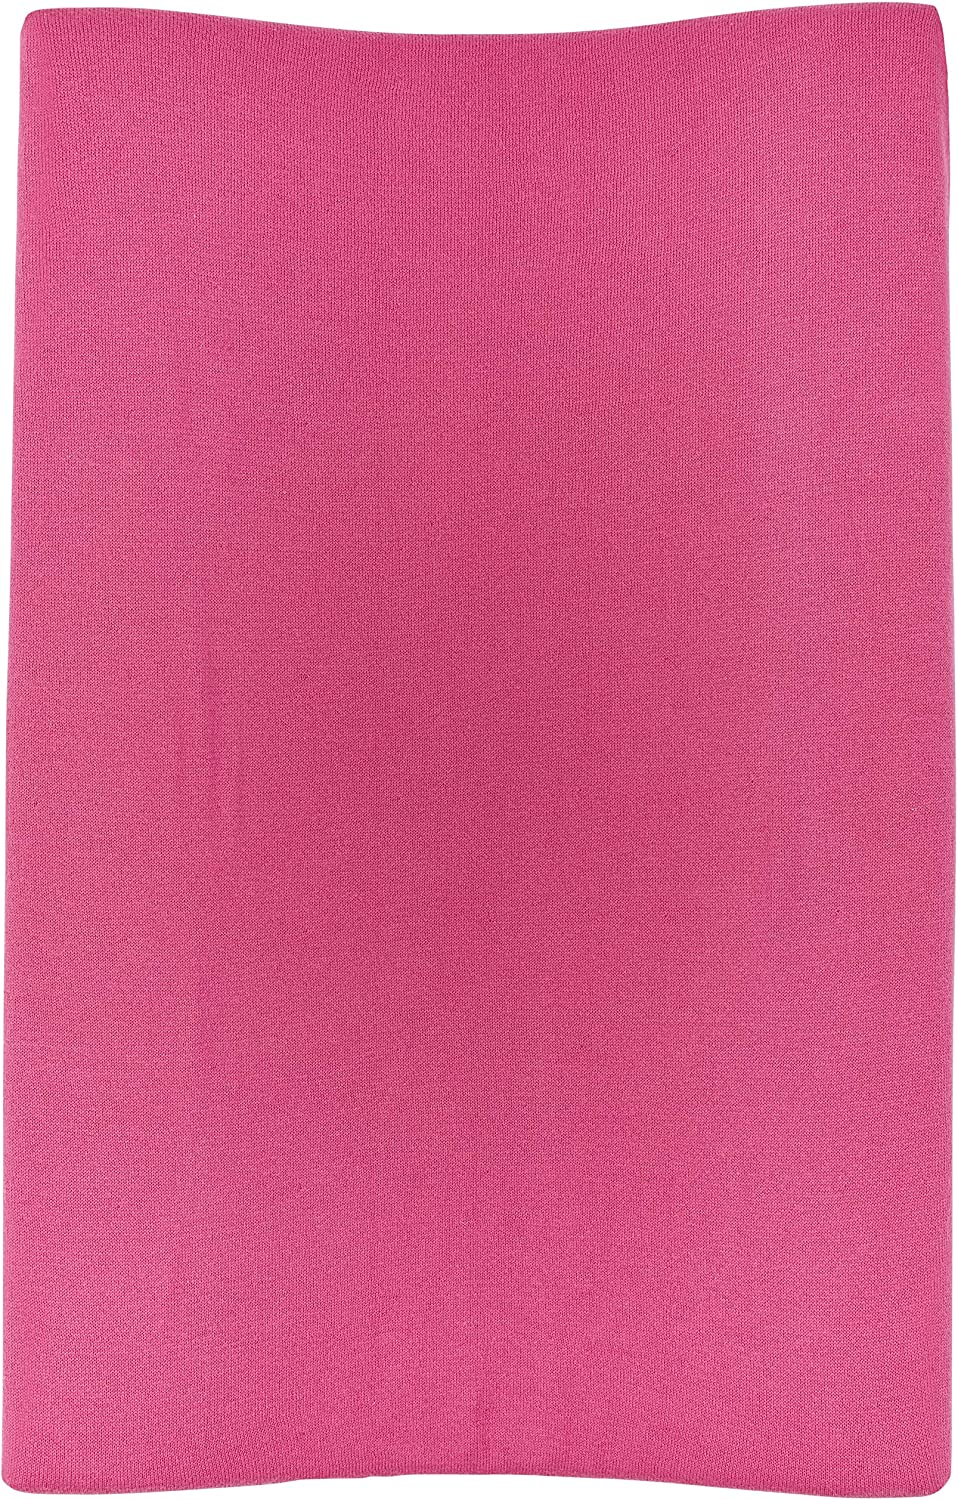 Meyco 2763033 2-Wedge Changing Mat Cover Knitted Knit Bright Pink 45 x 70 cm Multi-Coloured